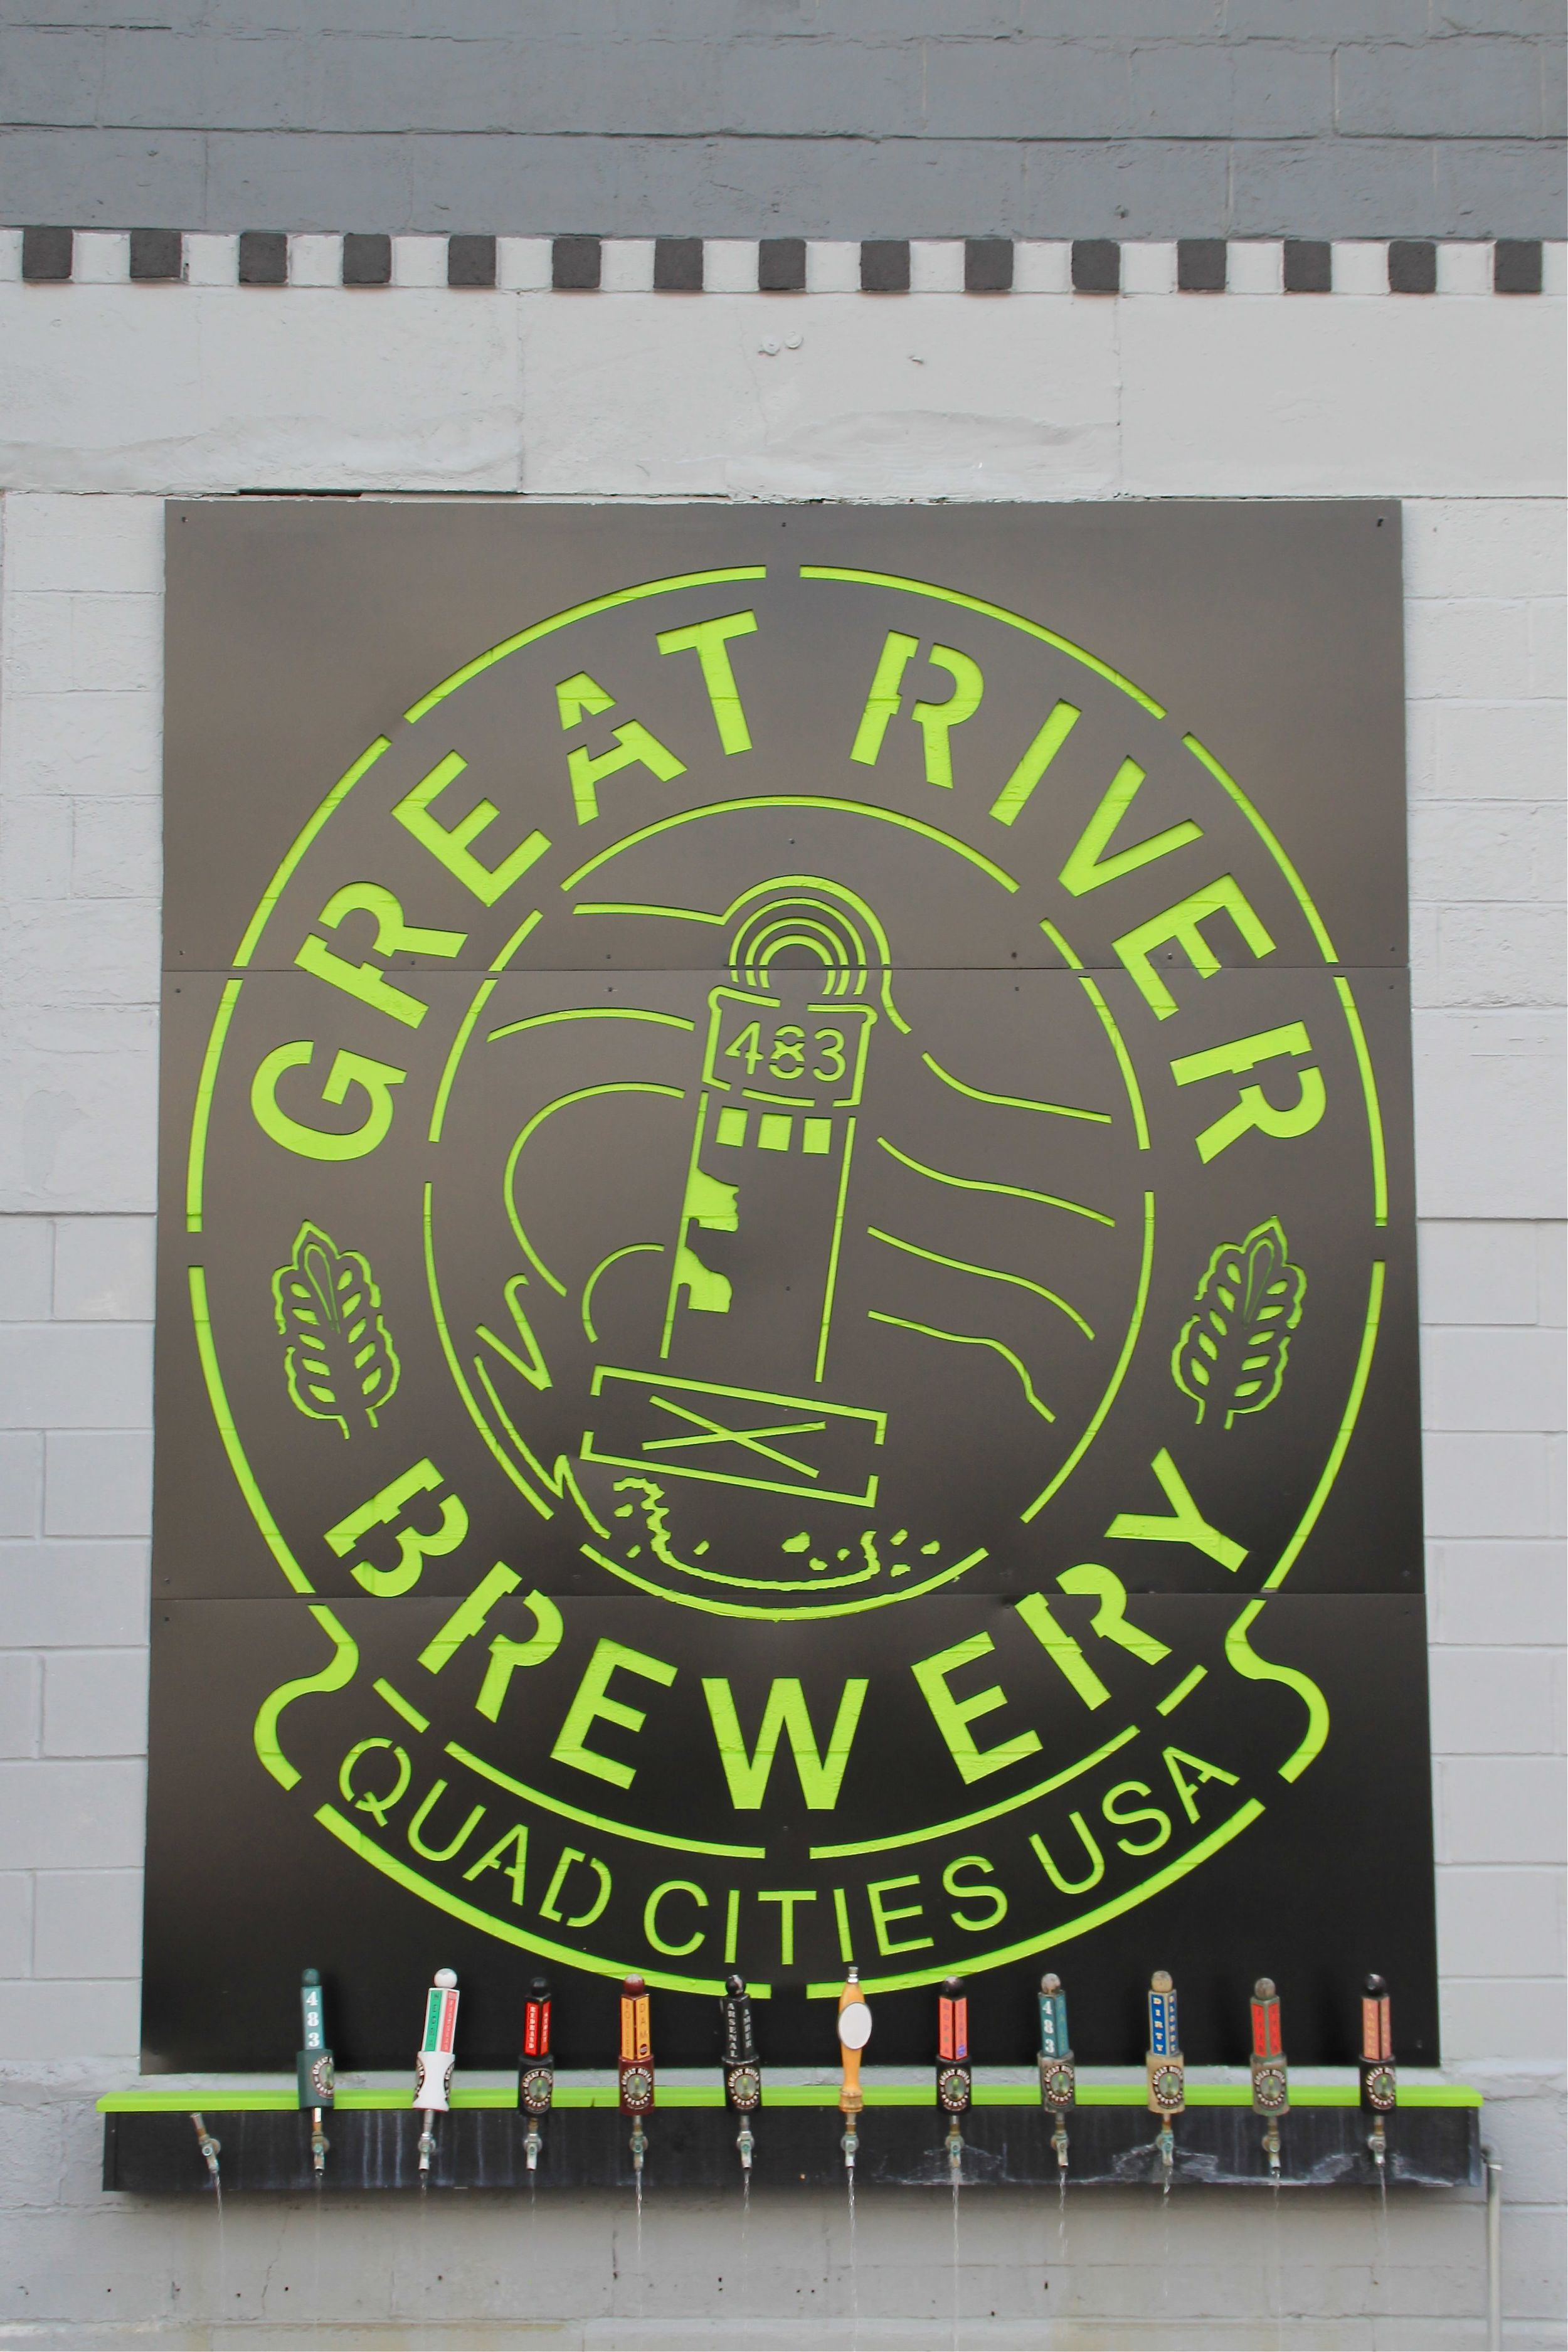 Quad Cities Guide - The Midwestival